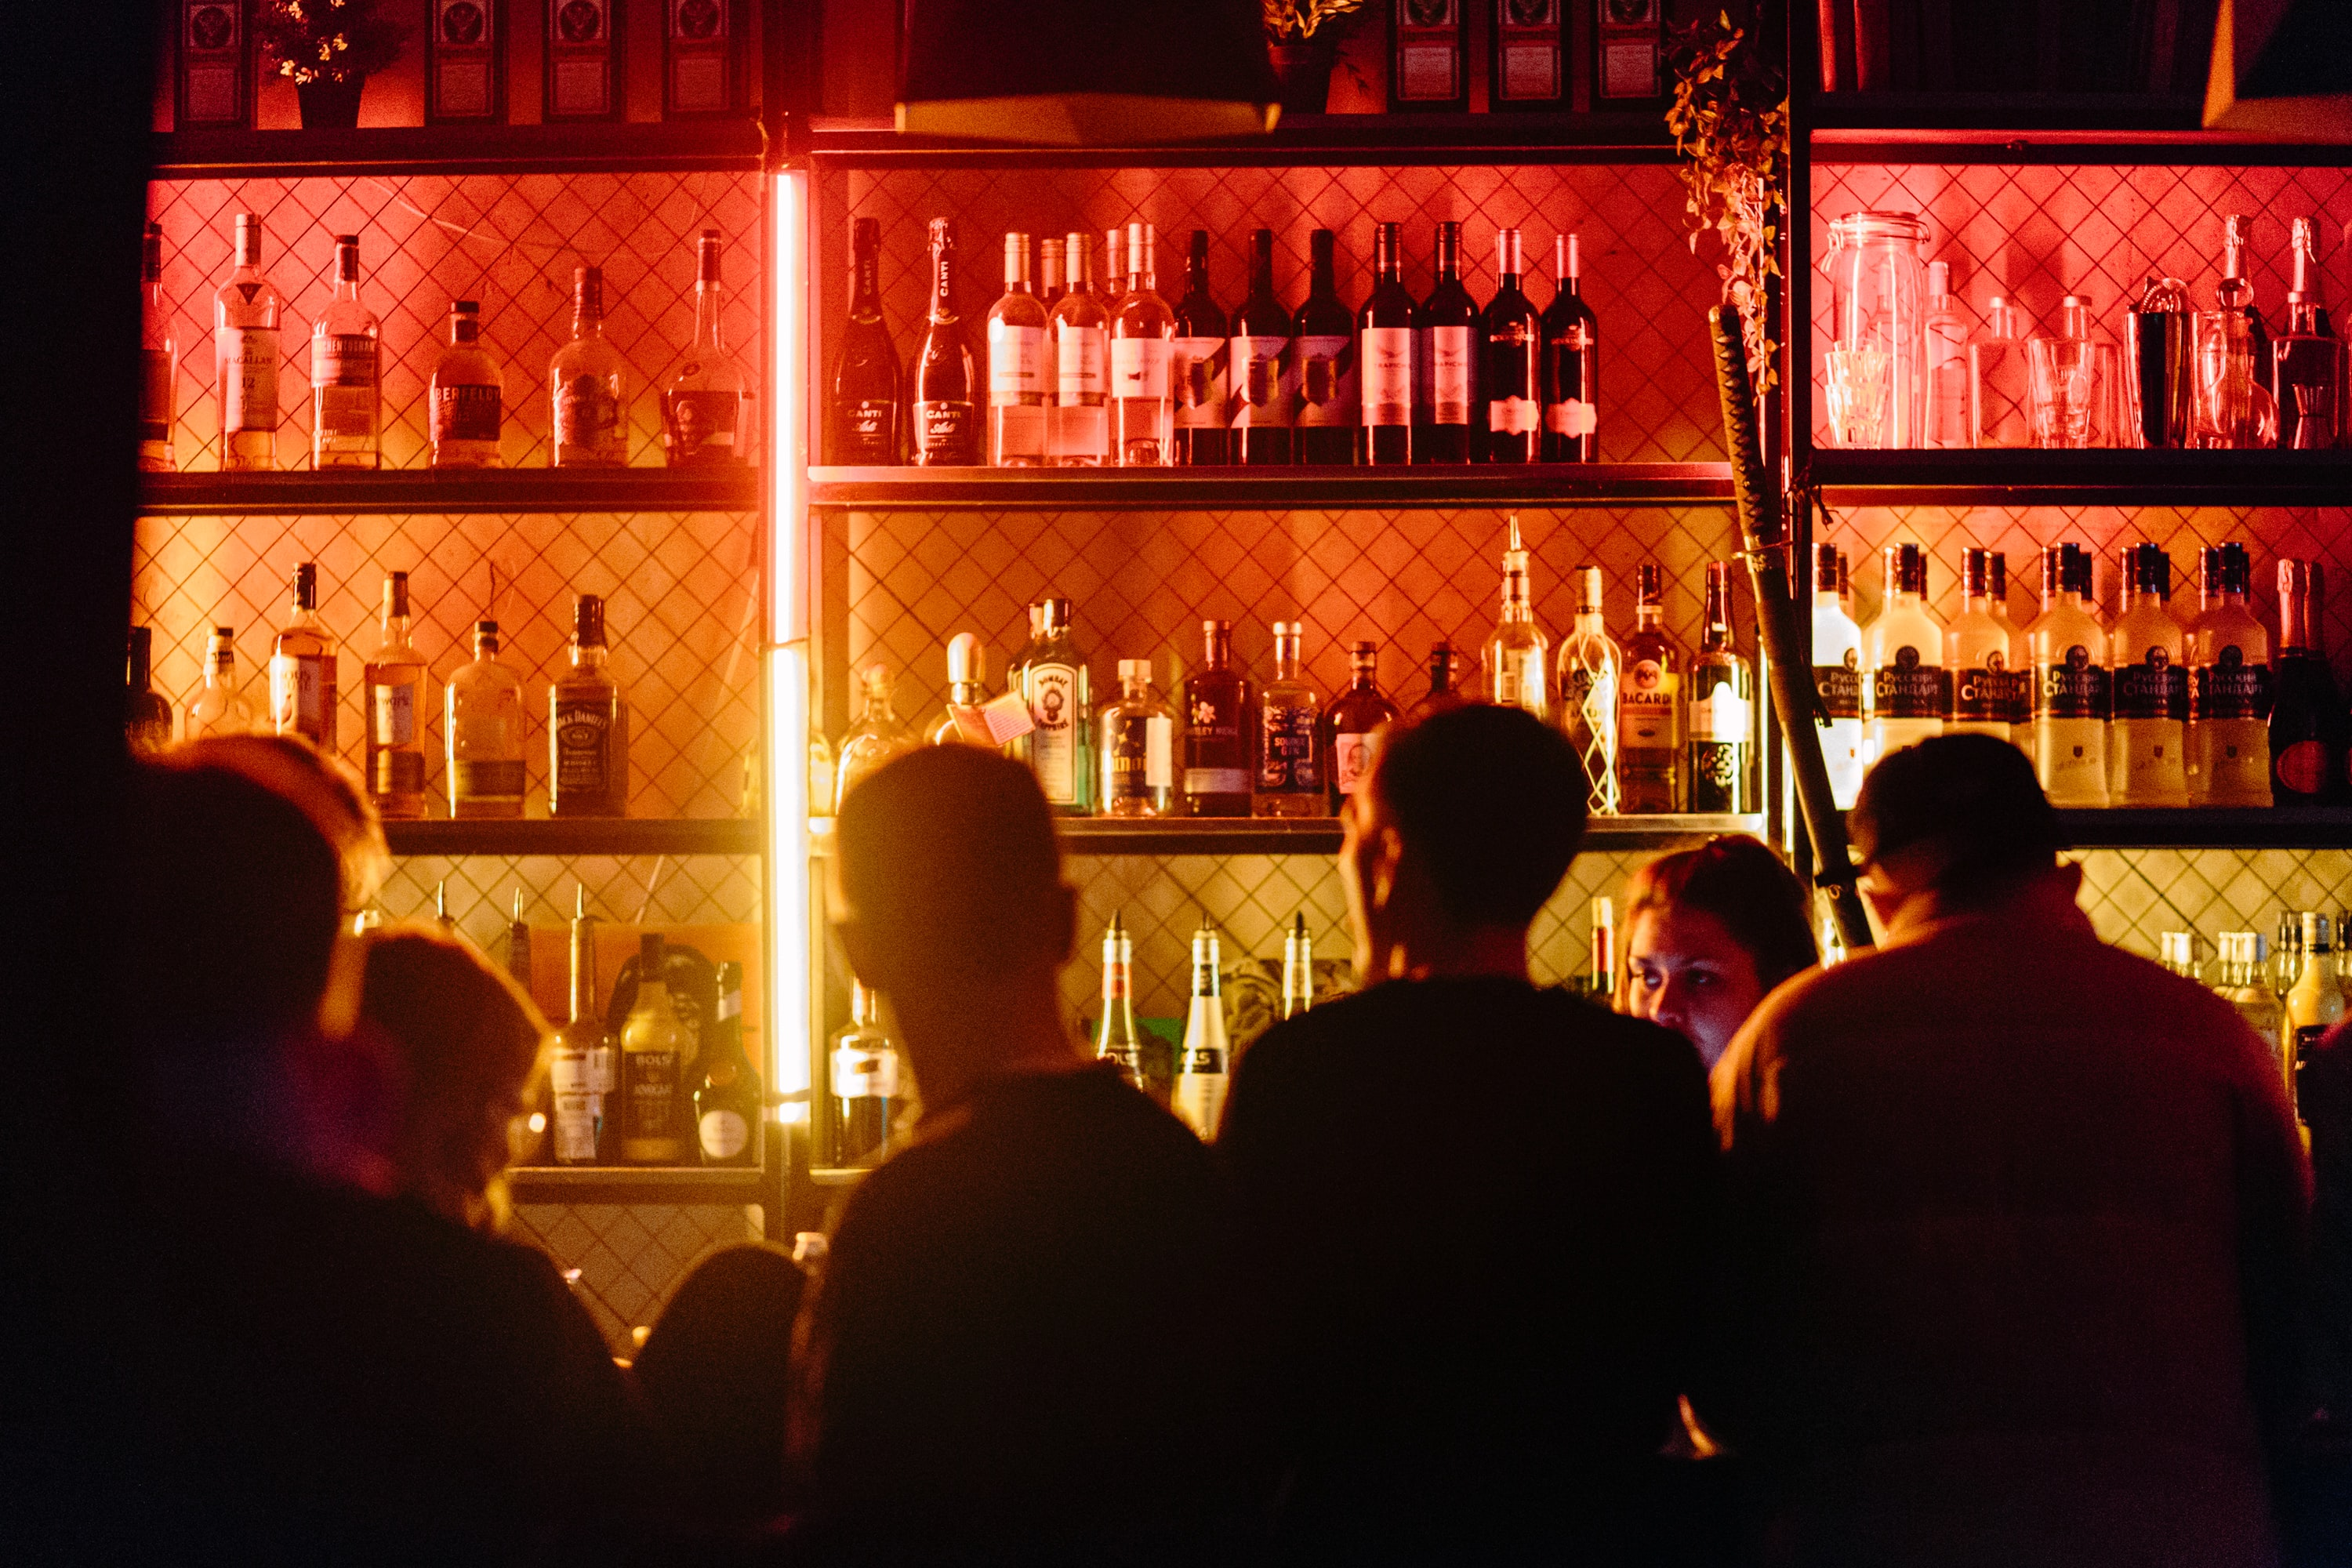 a group of people standing in front of a bar